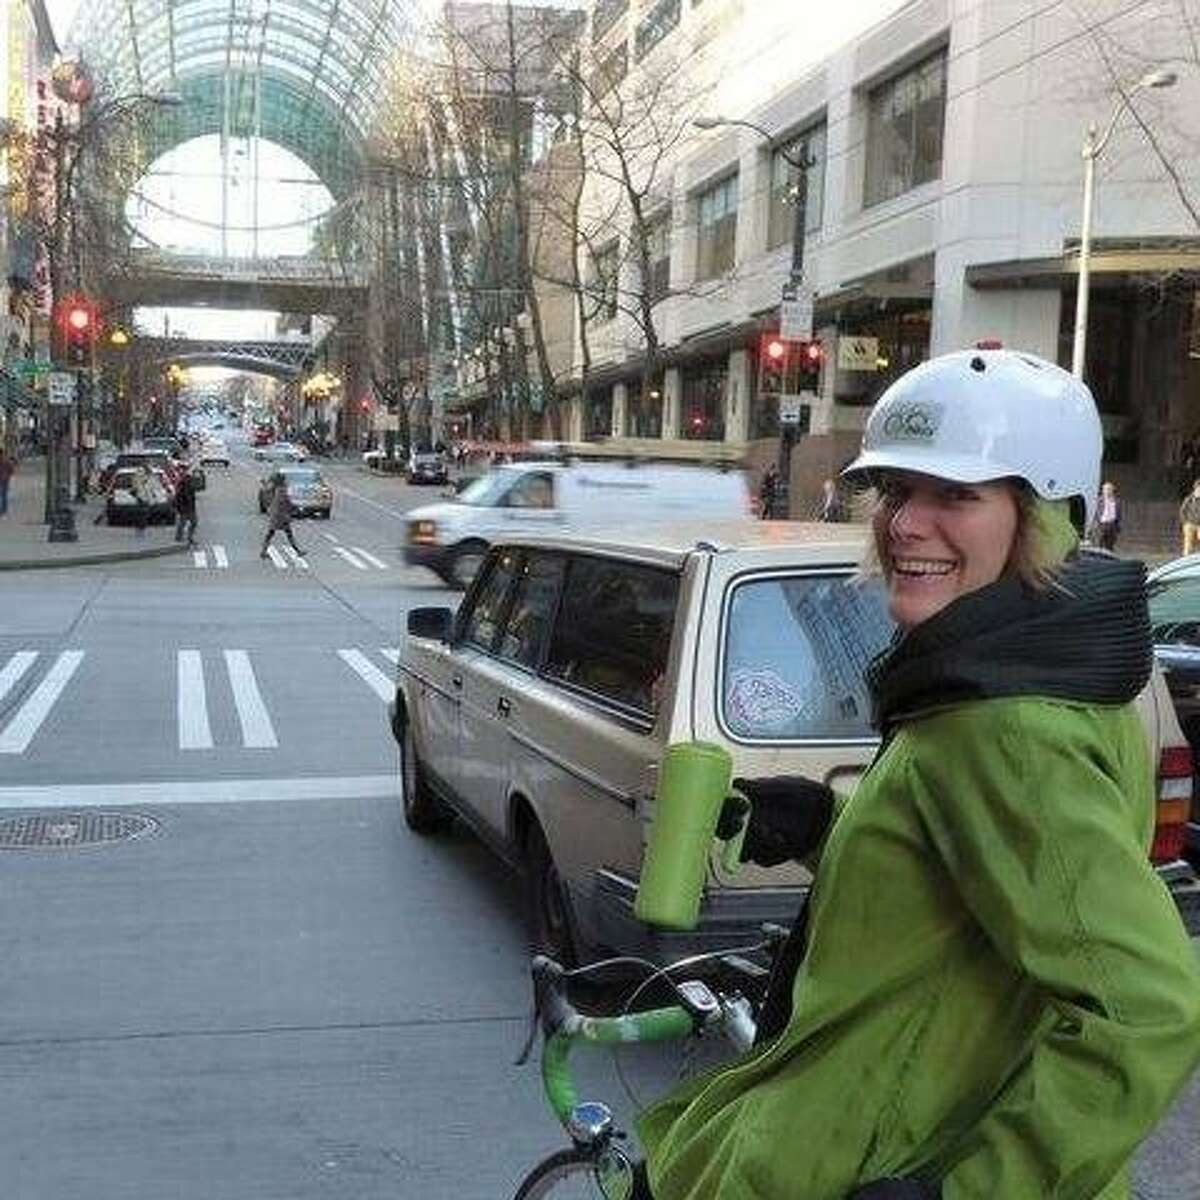 Barb Chamberlain, who works for the Washington State Department of Transportation, is a confirmed and avid bike rider in Seattle.